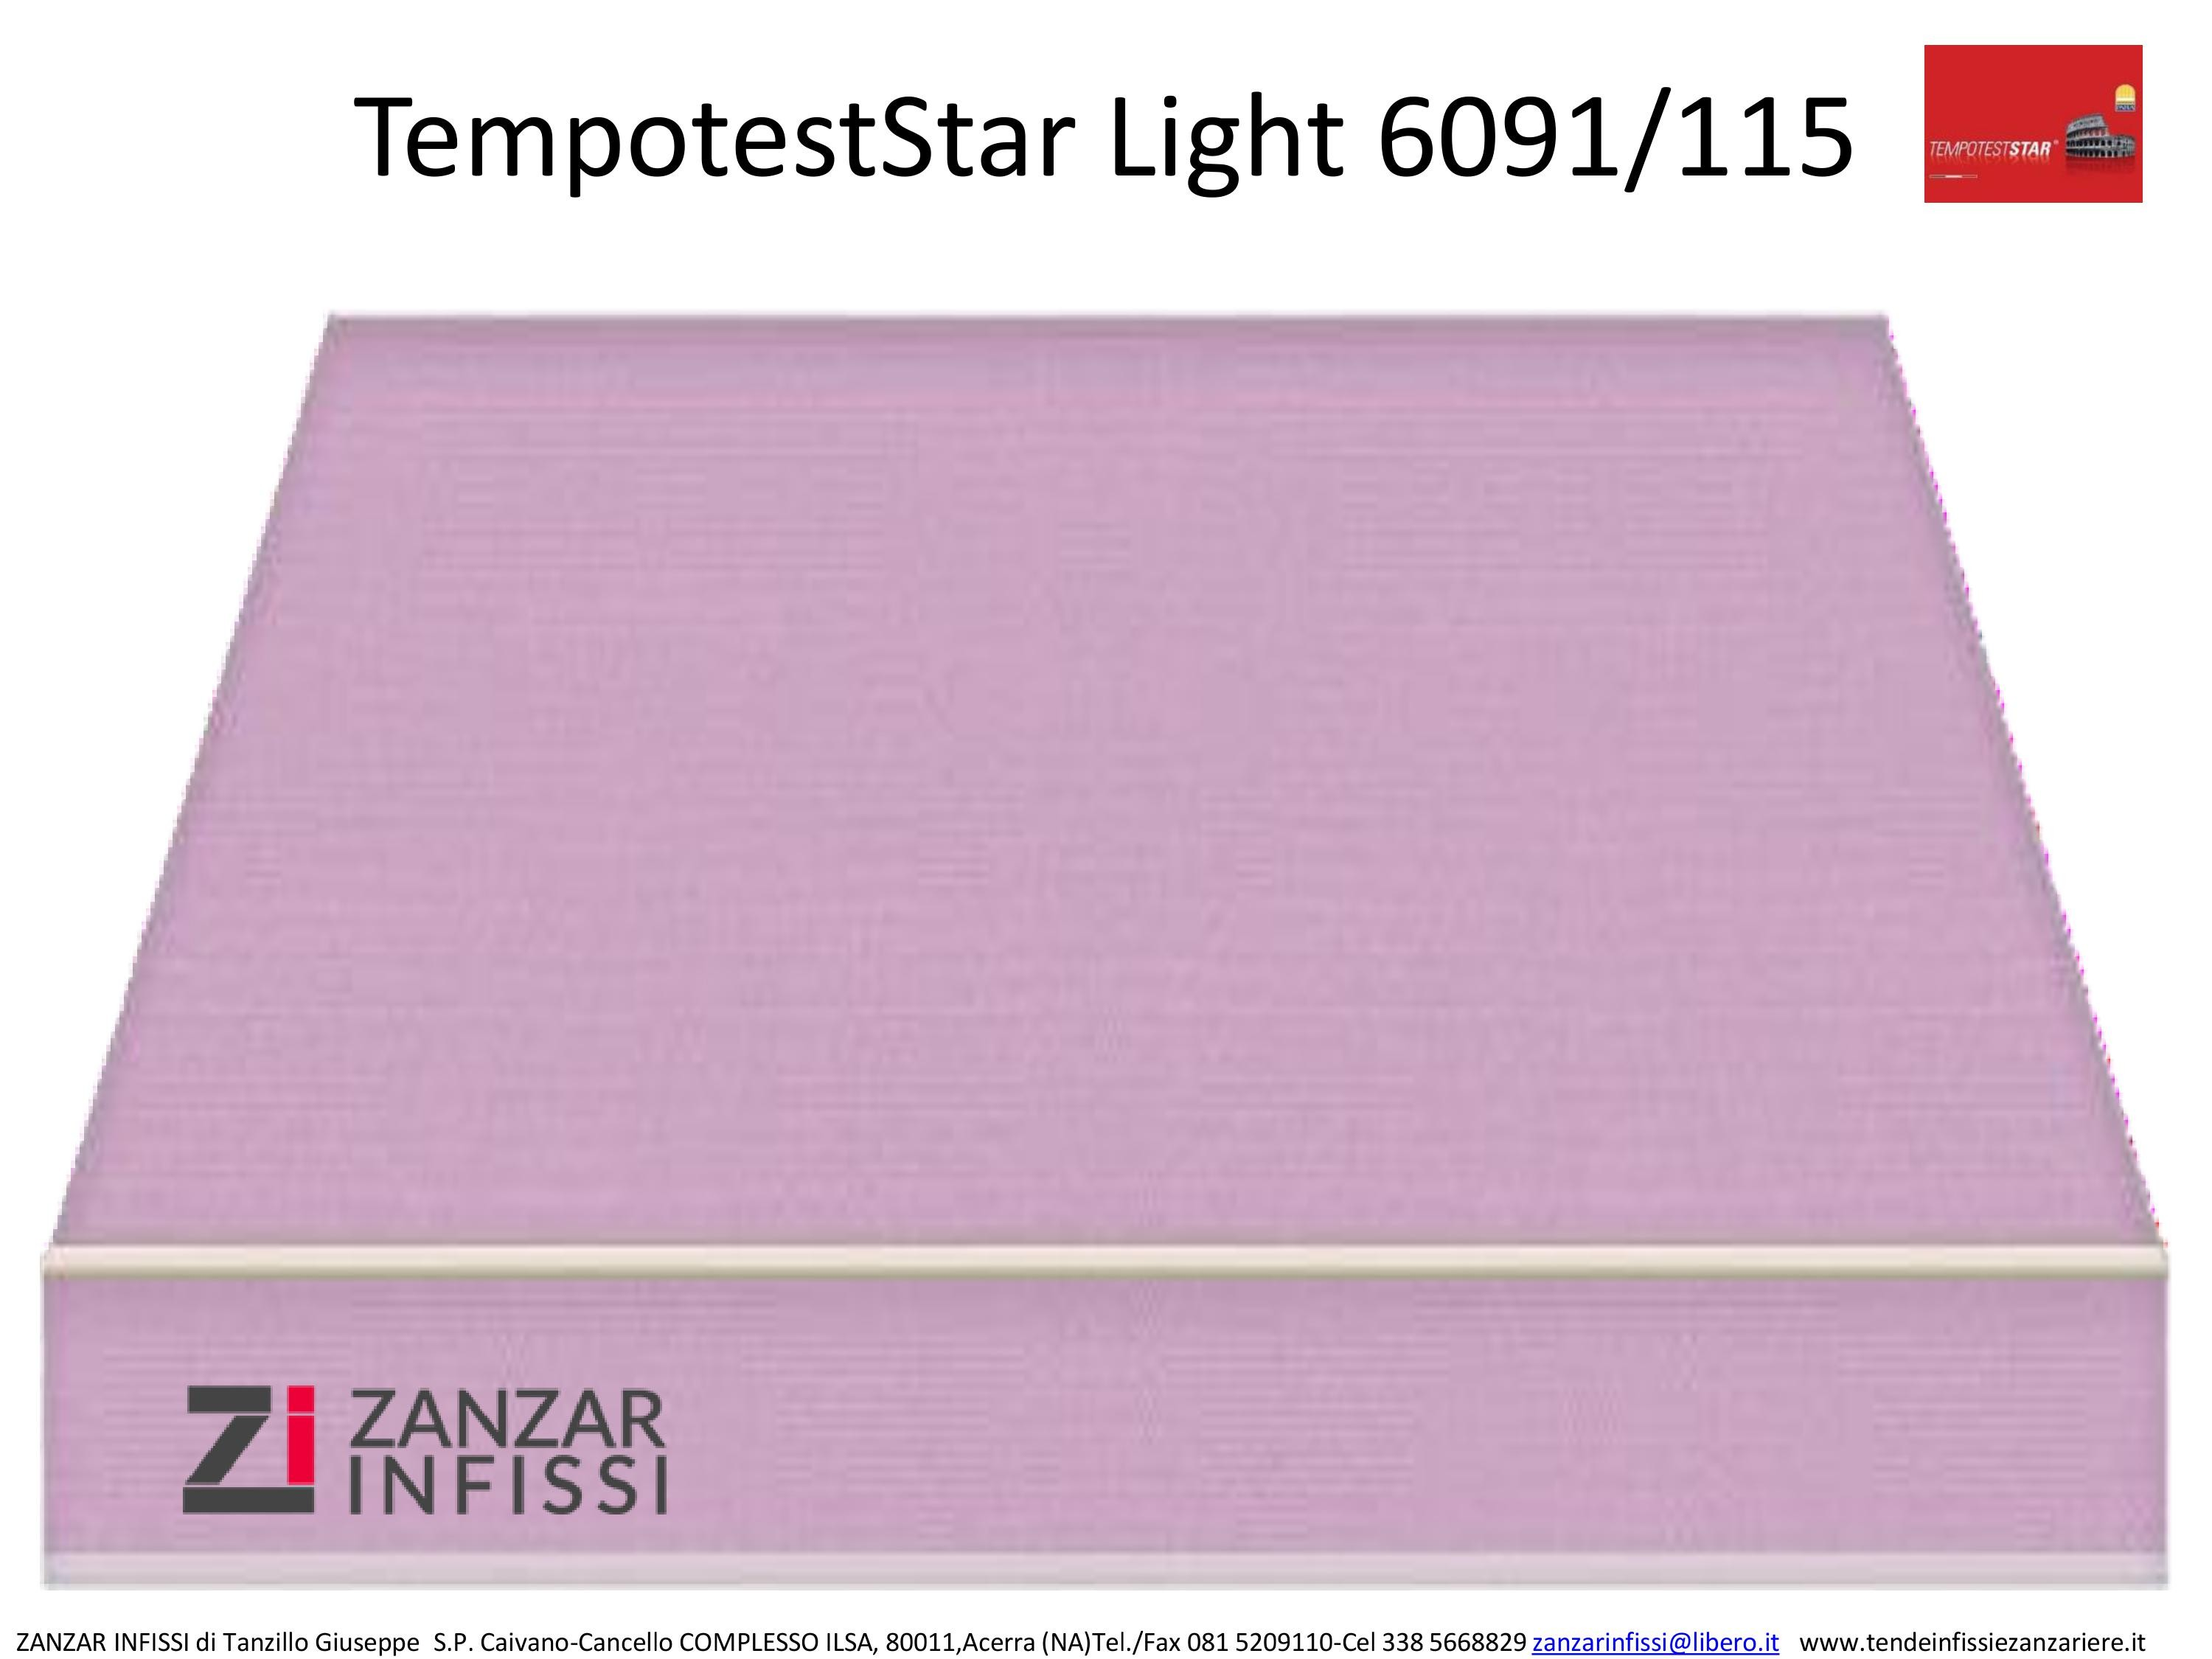 Tempotest star light 6091/115